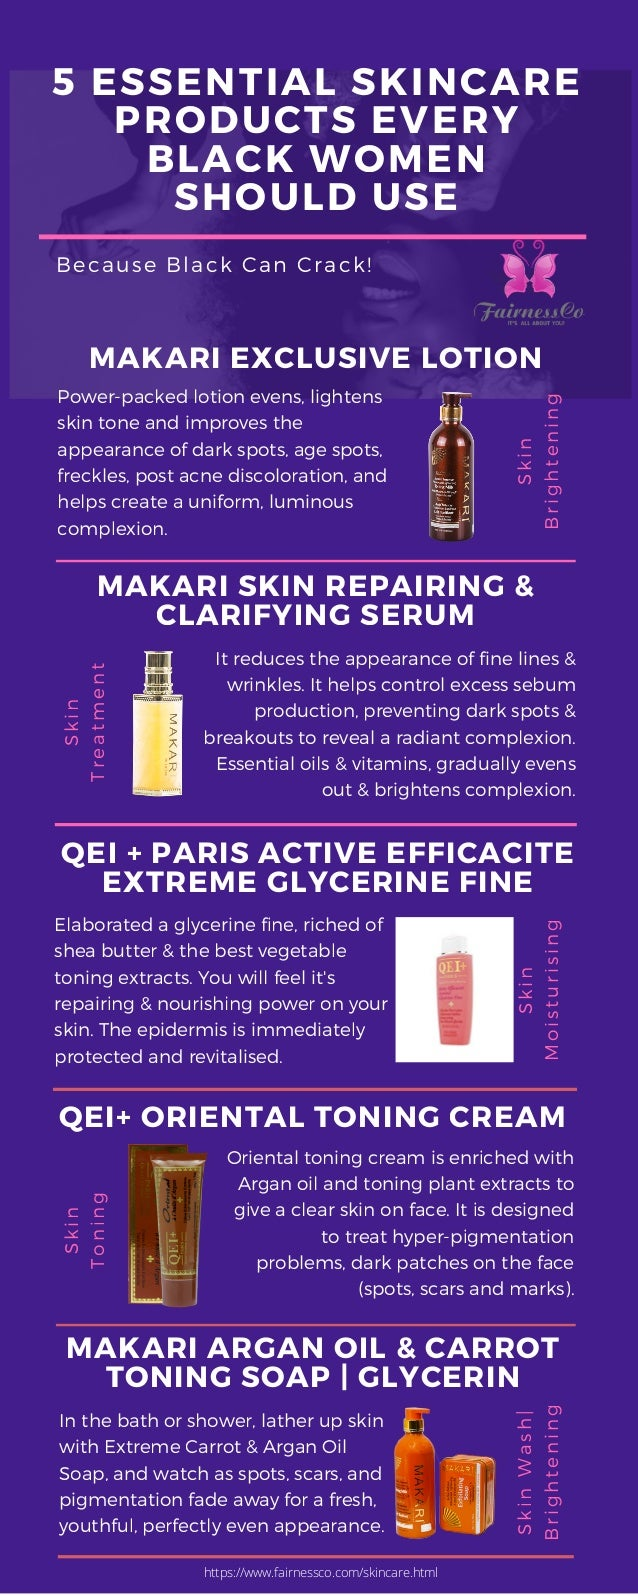 5 Essential Skincare Products Every Black Women Should Use